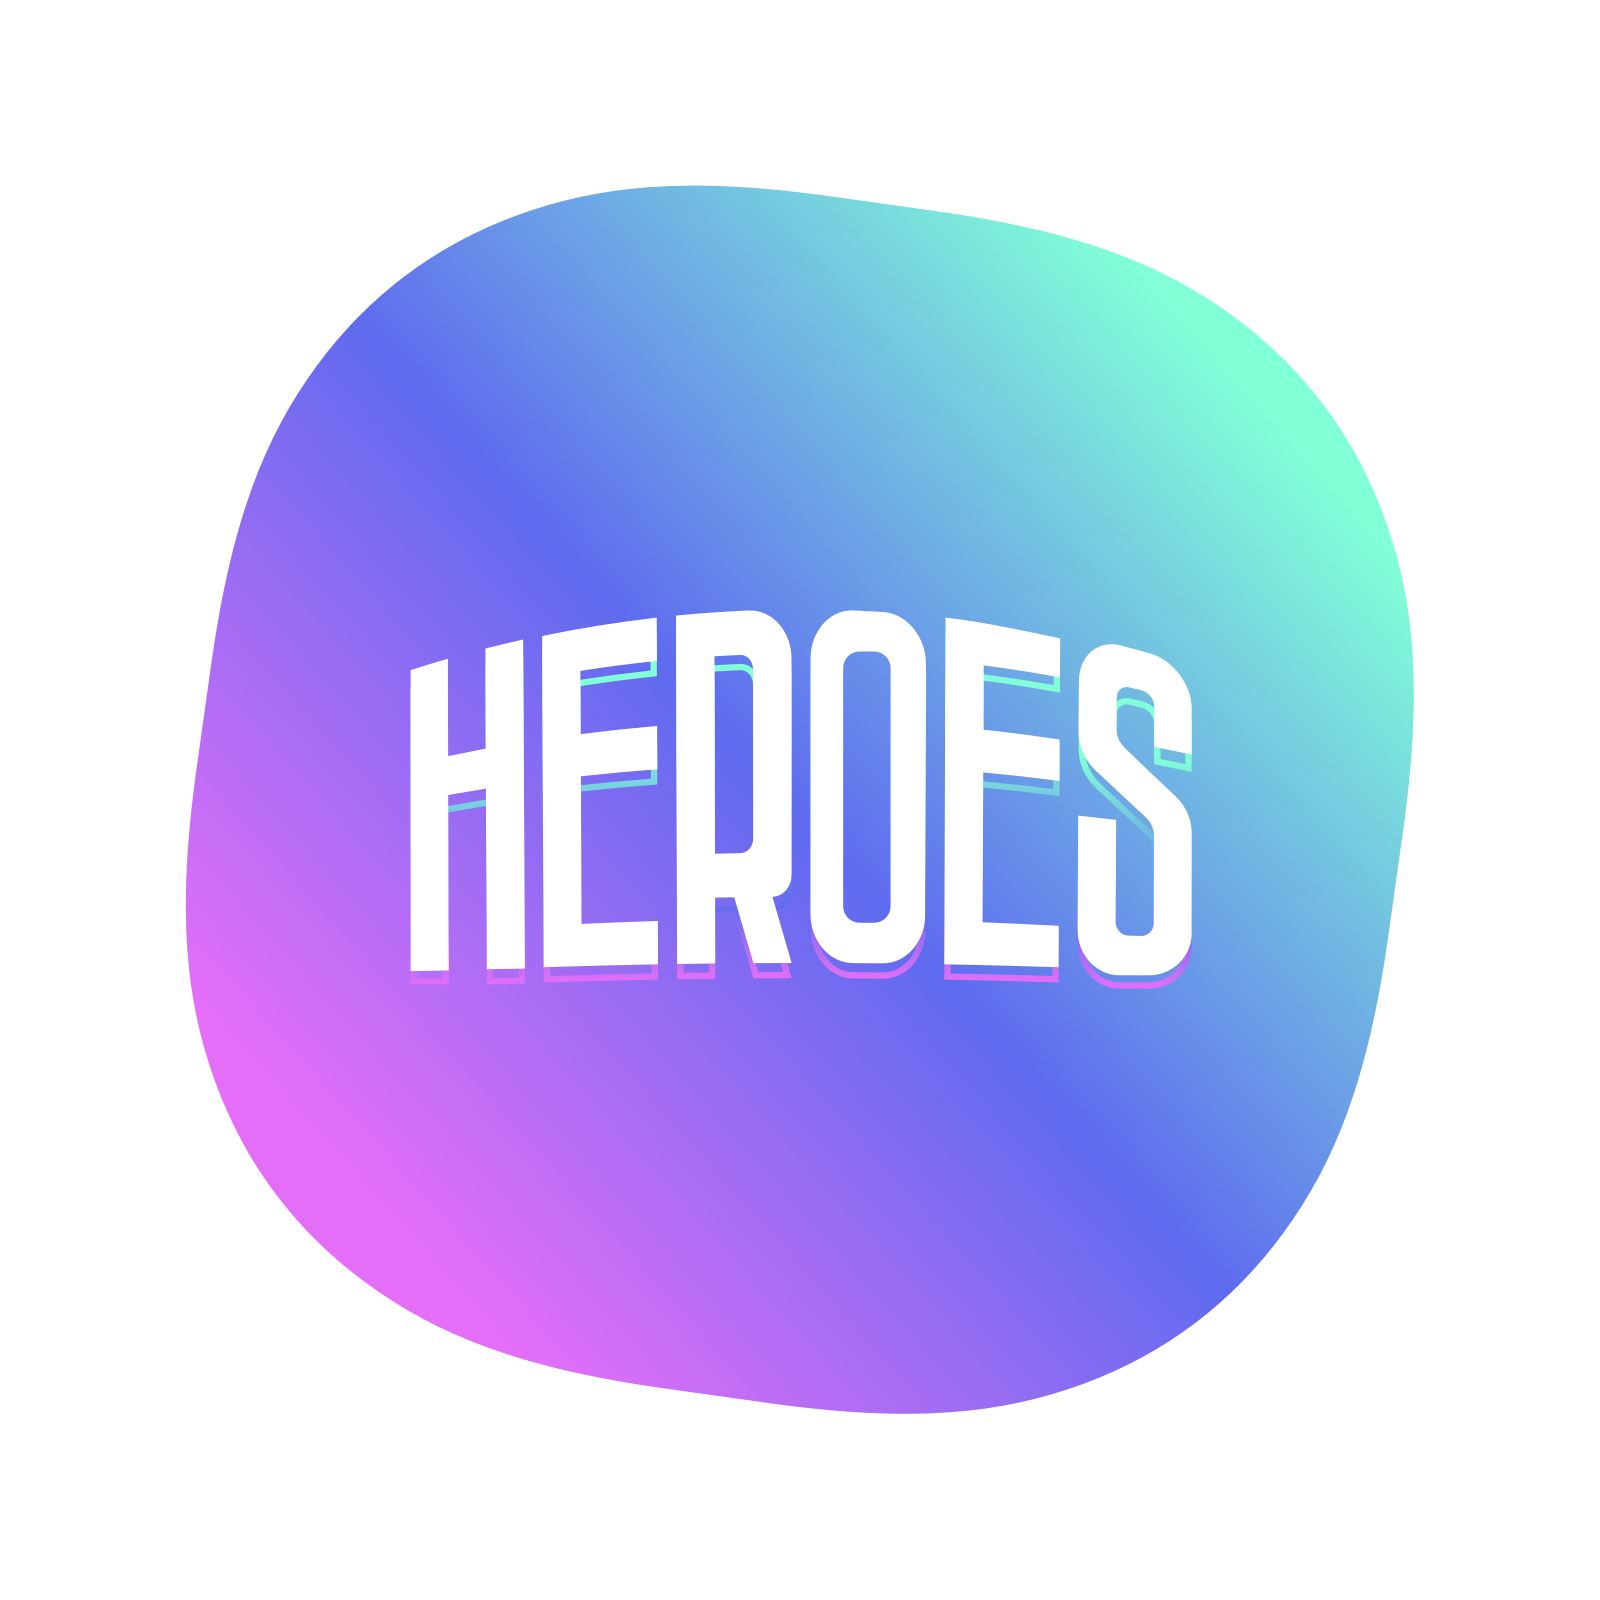 heroes_logo_rectangle2.png